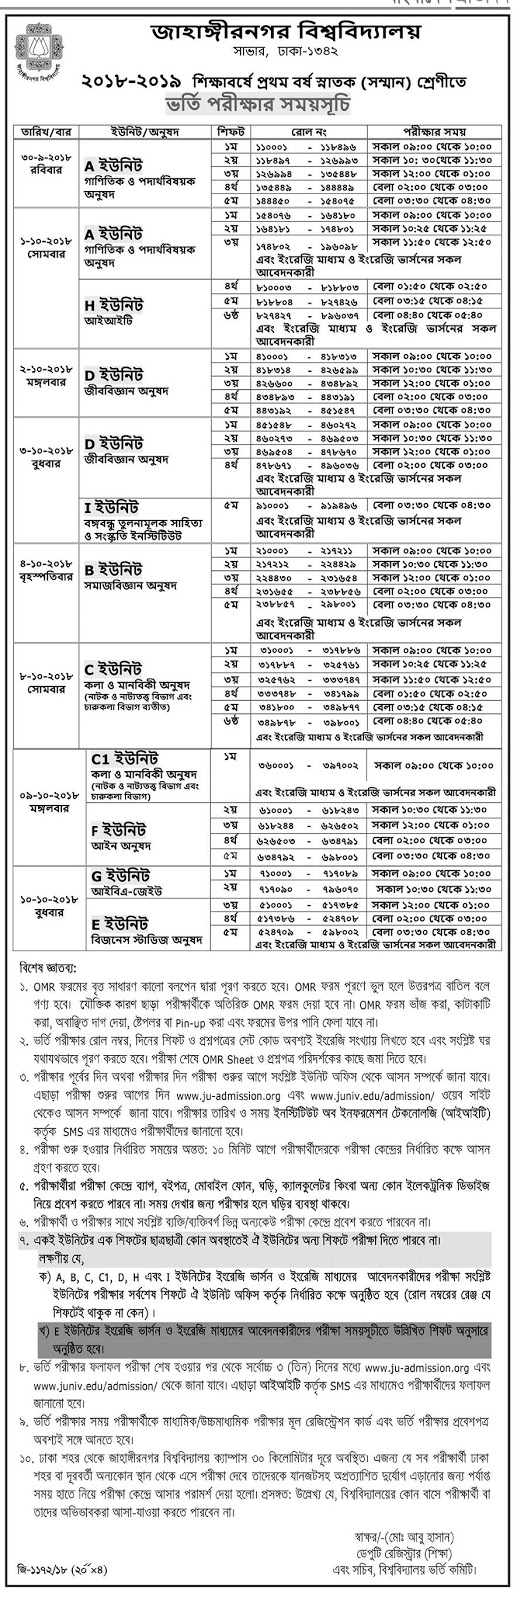 Jahangirnagar University Admission 2018-2019 Exam Date, Time and Seat Plan